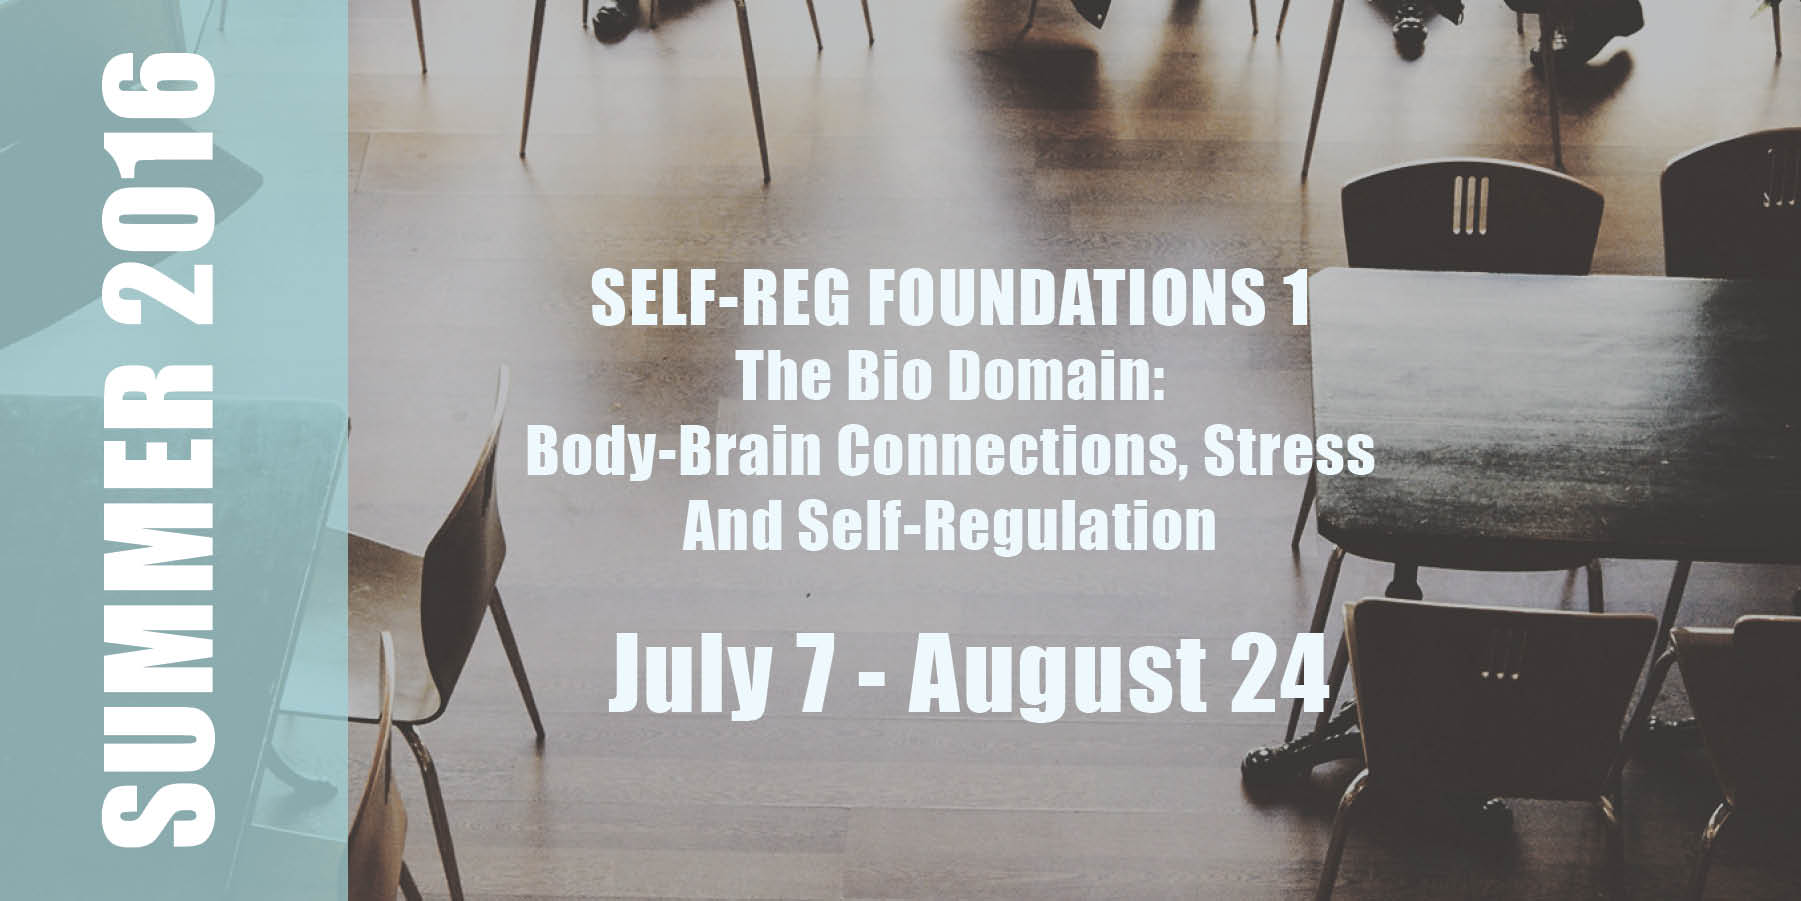 S-R Foundations 1    Date:  July 7 - August 24